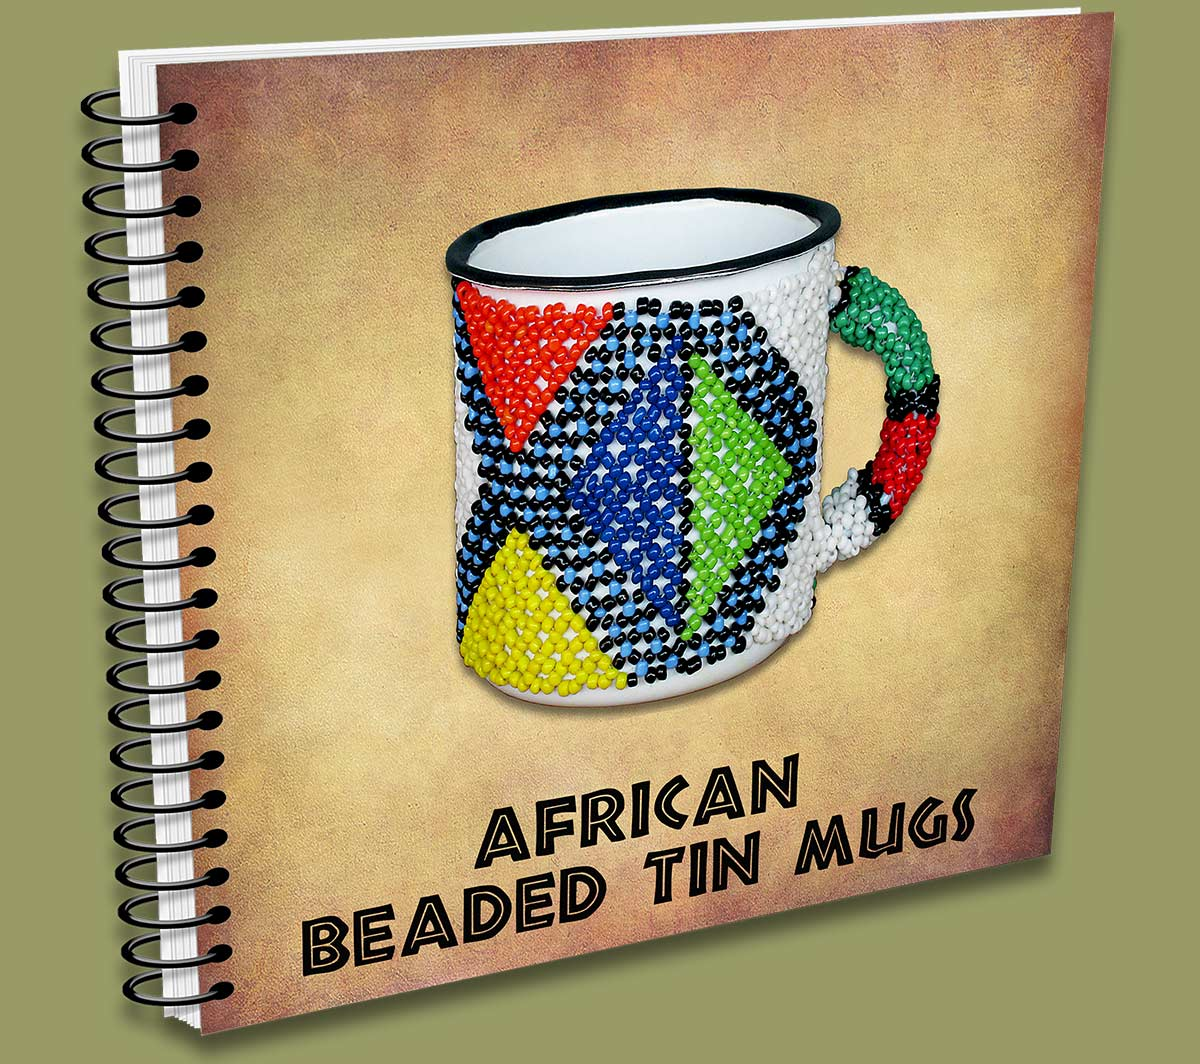 African Beaded Tin Mugs Resellers Catalogue